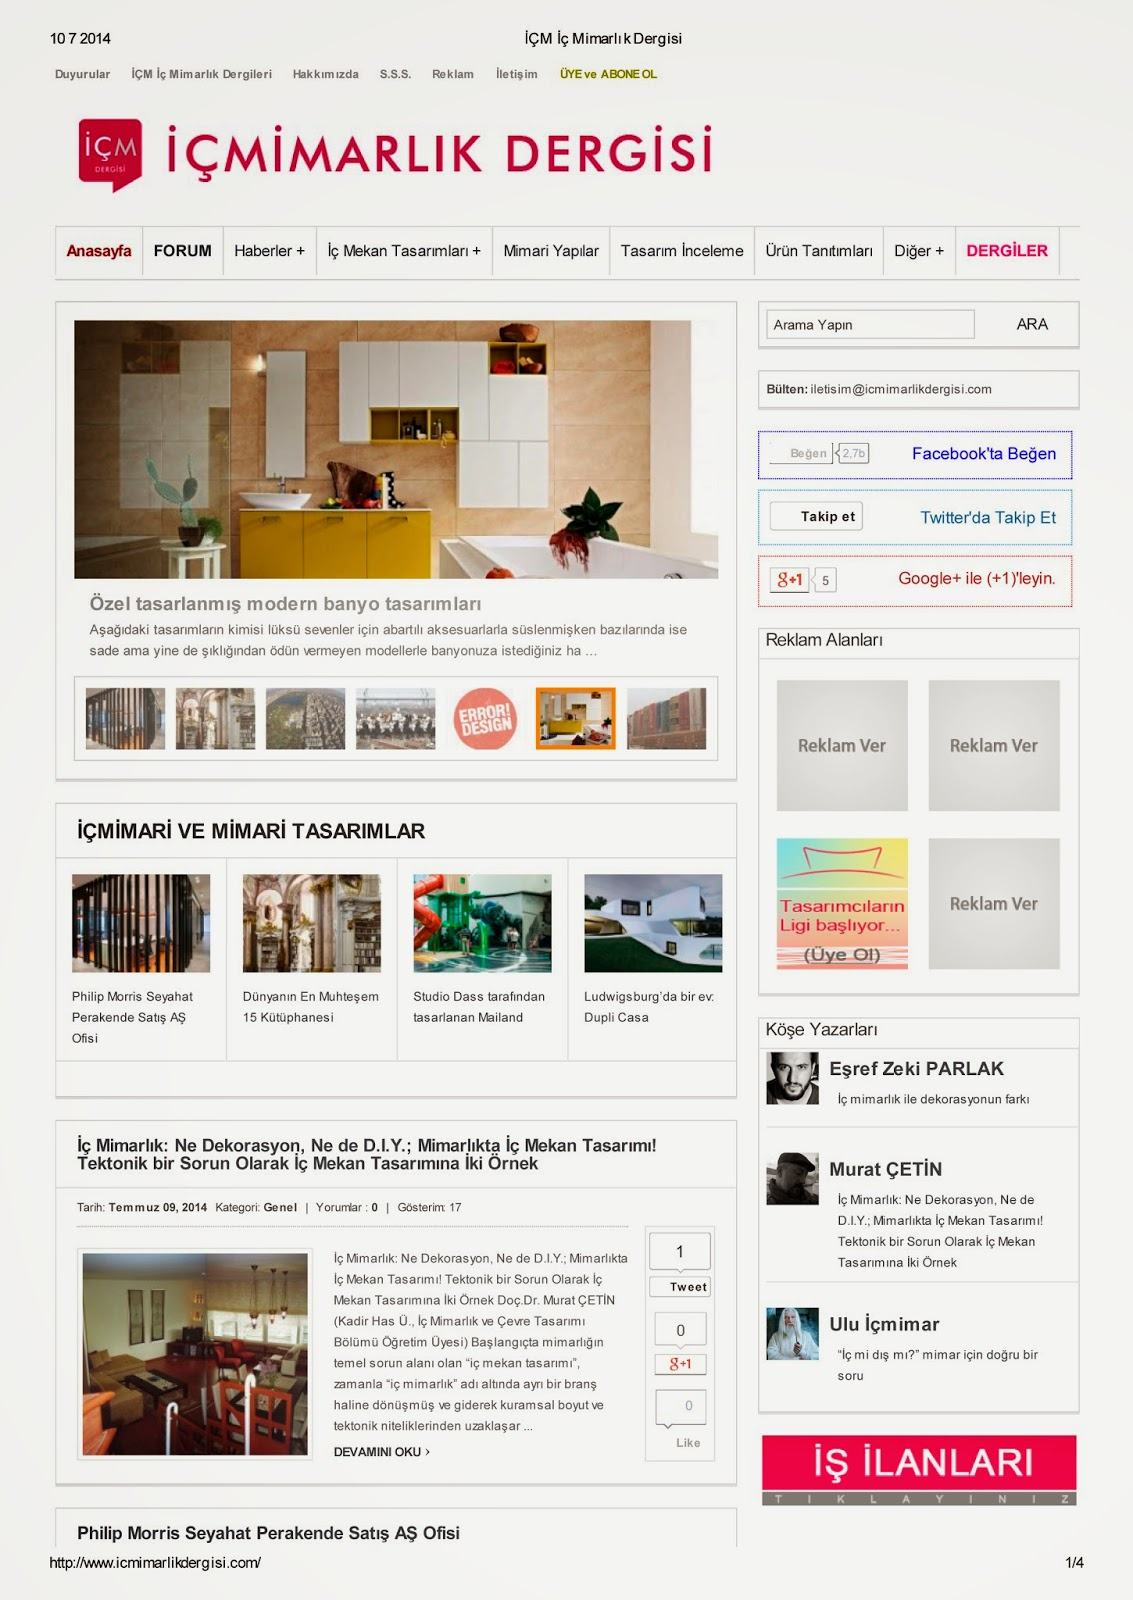 A NEW ARTICLE Mimarlk Dergisi INTERIOR ARCHITECTURE NEITHER DECORATION NOR DIY SPACE DESIGN IN TWO CASES FOR THE